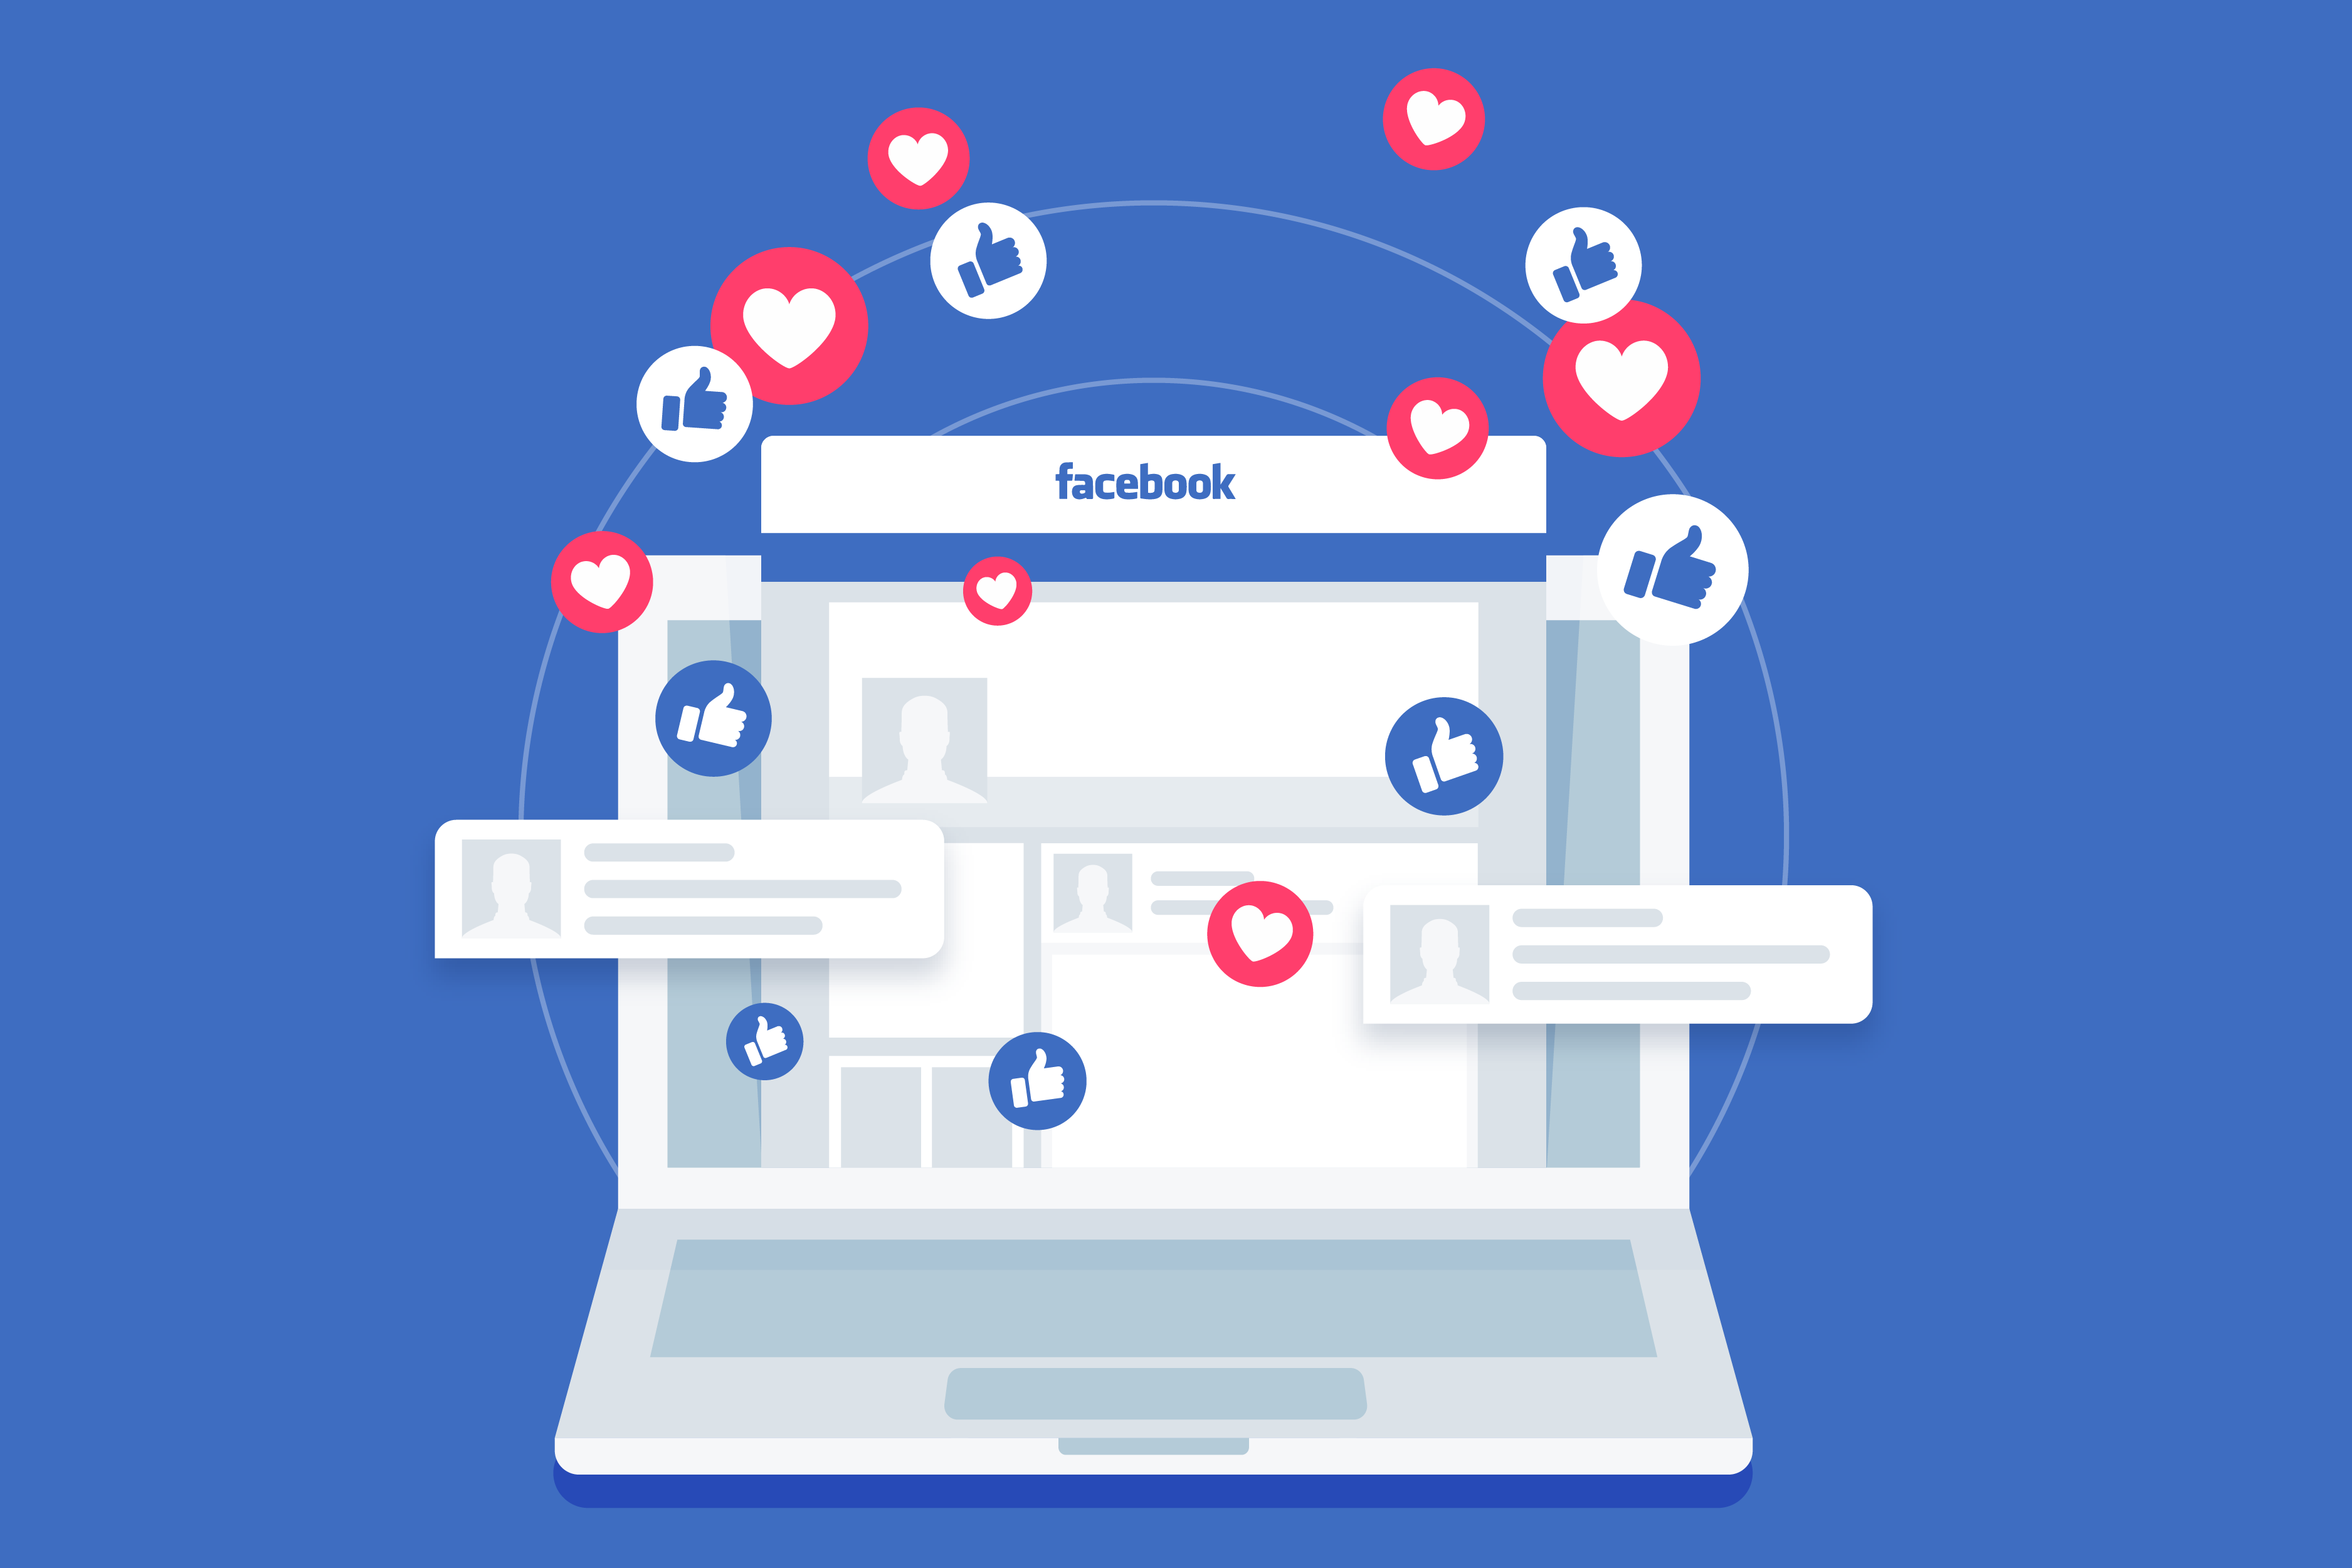 iOS 14.5 impacts Facebook ads delivery